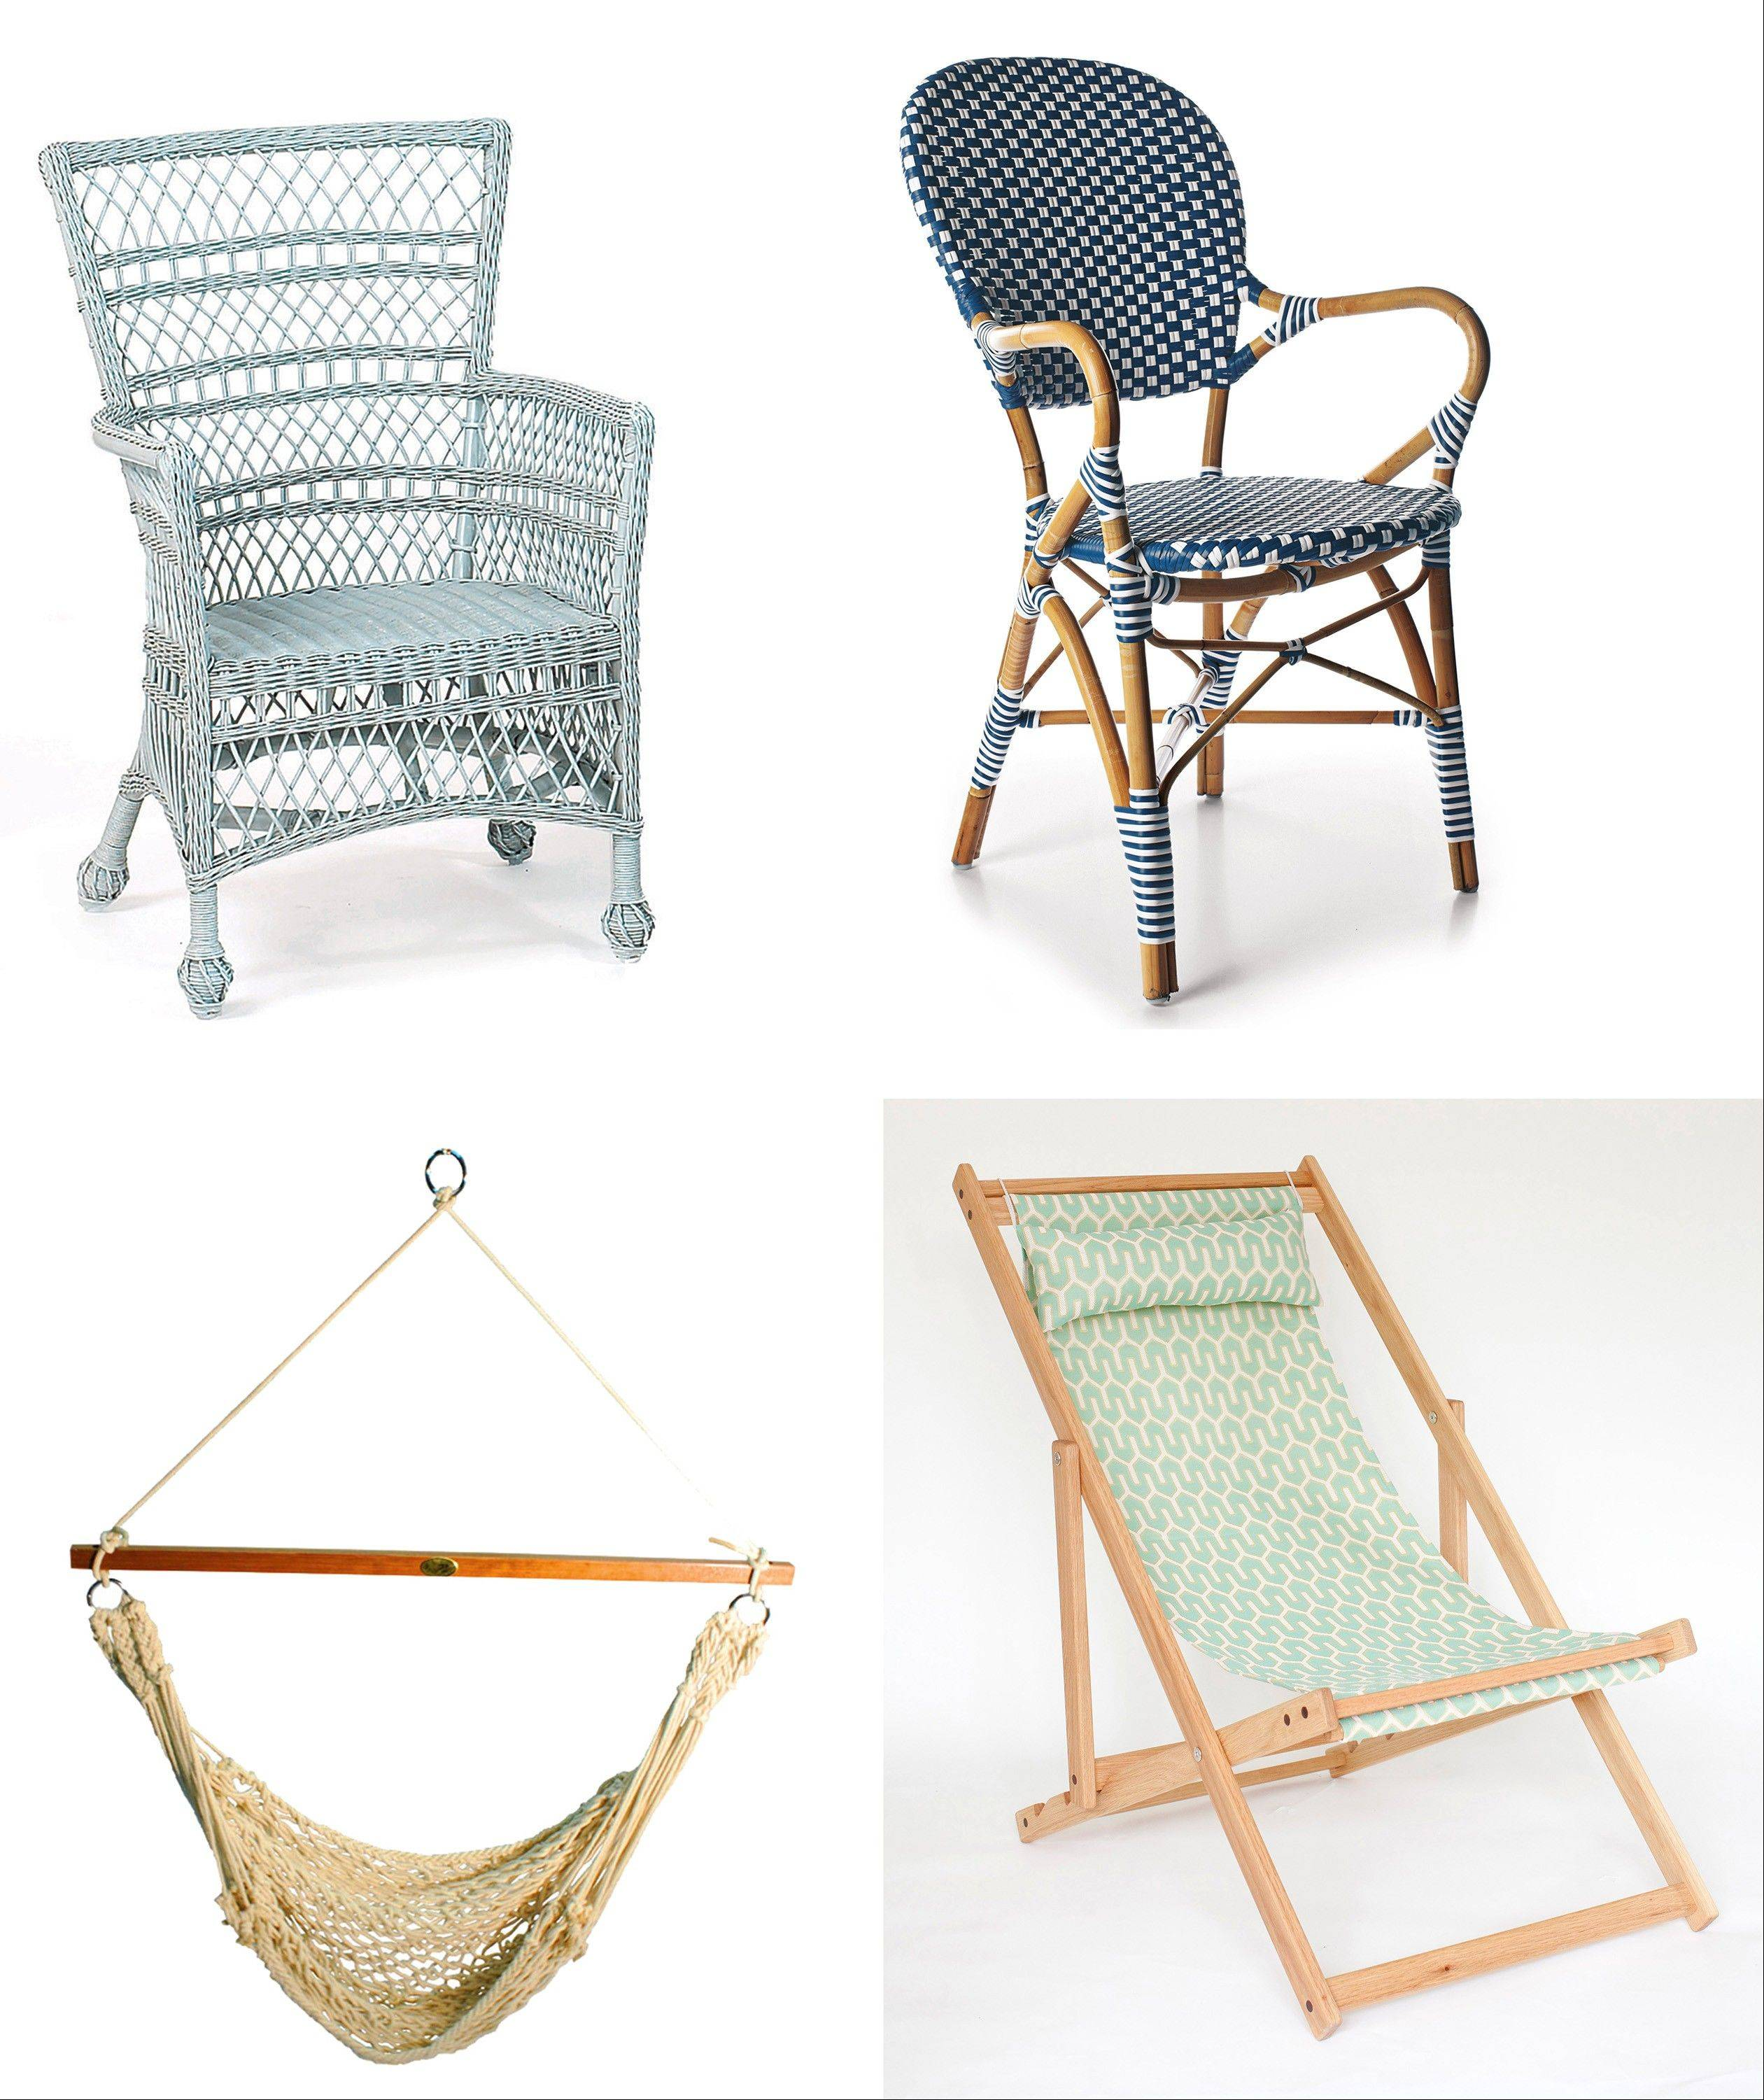 Today's twist on wicker and rattan is to buy it in colors, like Mainly Baskets' veranda chair, top left, and the Navy Riviera chair from Serena & Lily, top right; for outdoor seating, try the Single Point rope hammock chair, bottom left, and the Tybee deck chair from Gallant & Jones, bottom right.